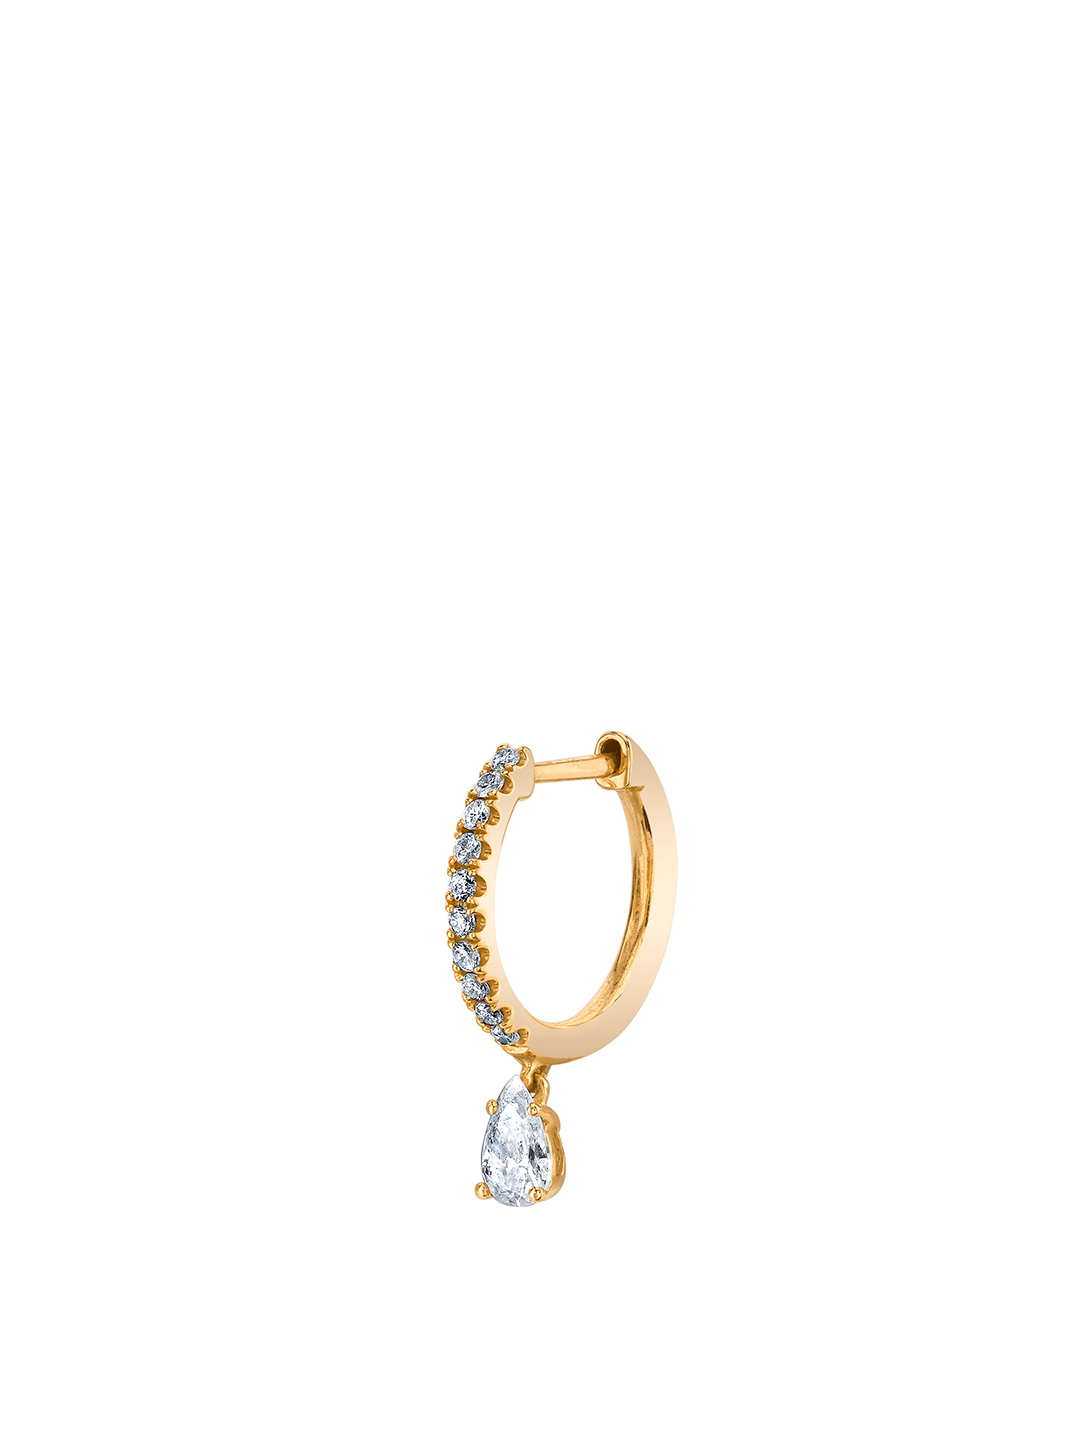 ANITA KO Small 18K Gold Hoop Earring With Diamonds Womens Gold